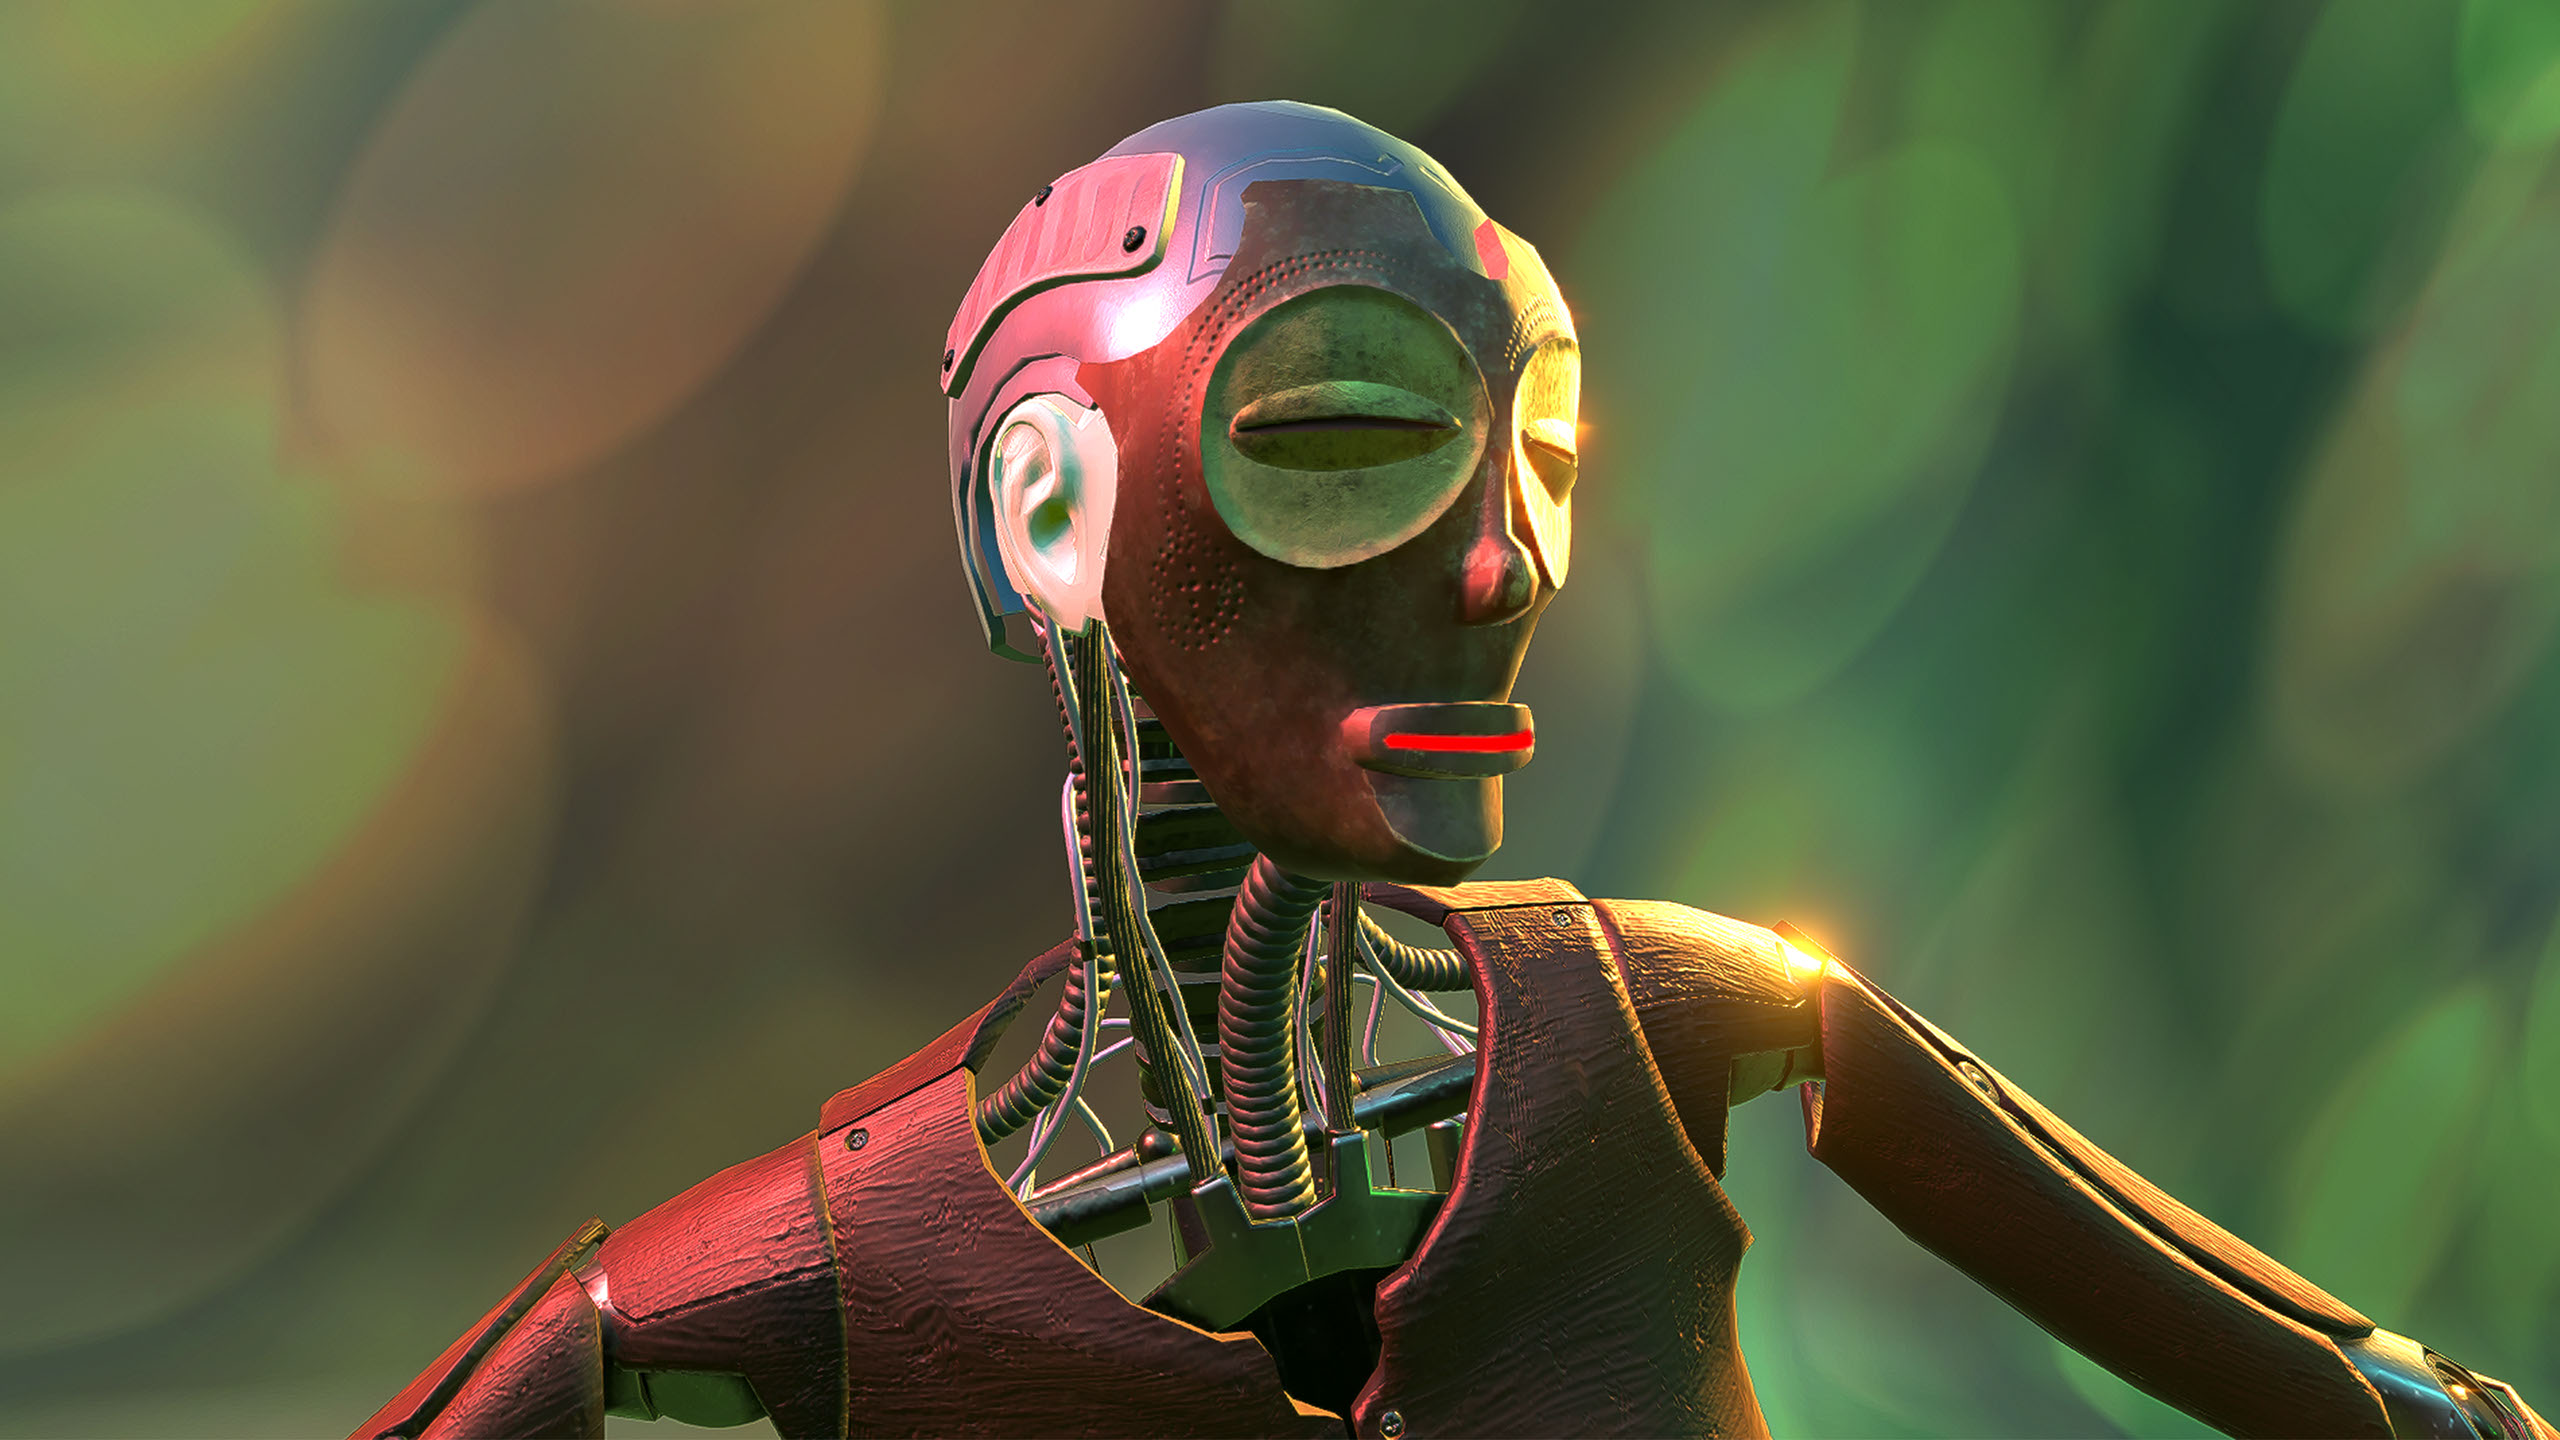 A rendering of a CGI robot, pictured from the shoulders up and looking off camera, stands against a blurry,green background. The facial features resemble a carved mask, with a stylized mouth and eyes, while the exposed neck reveals various wires and cables inside.